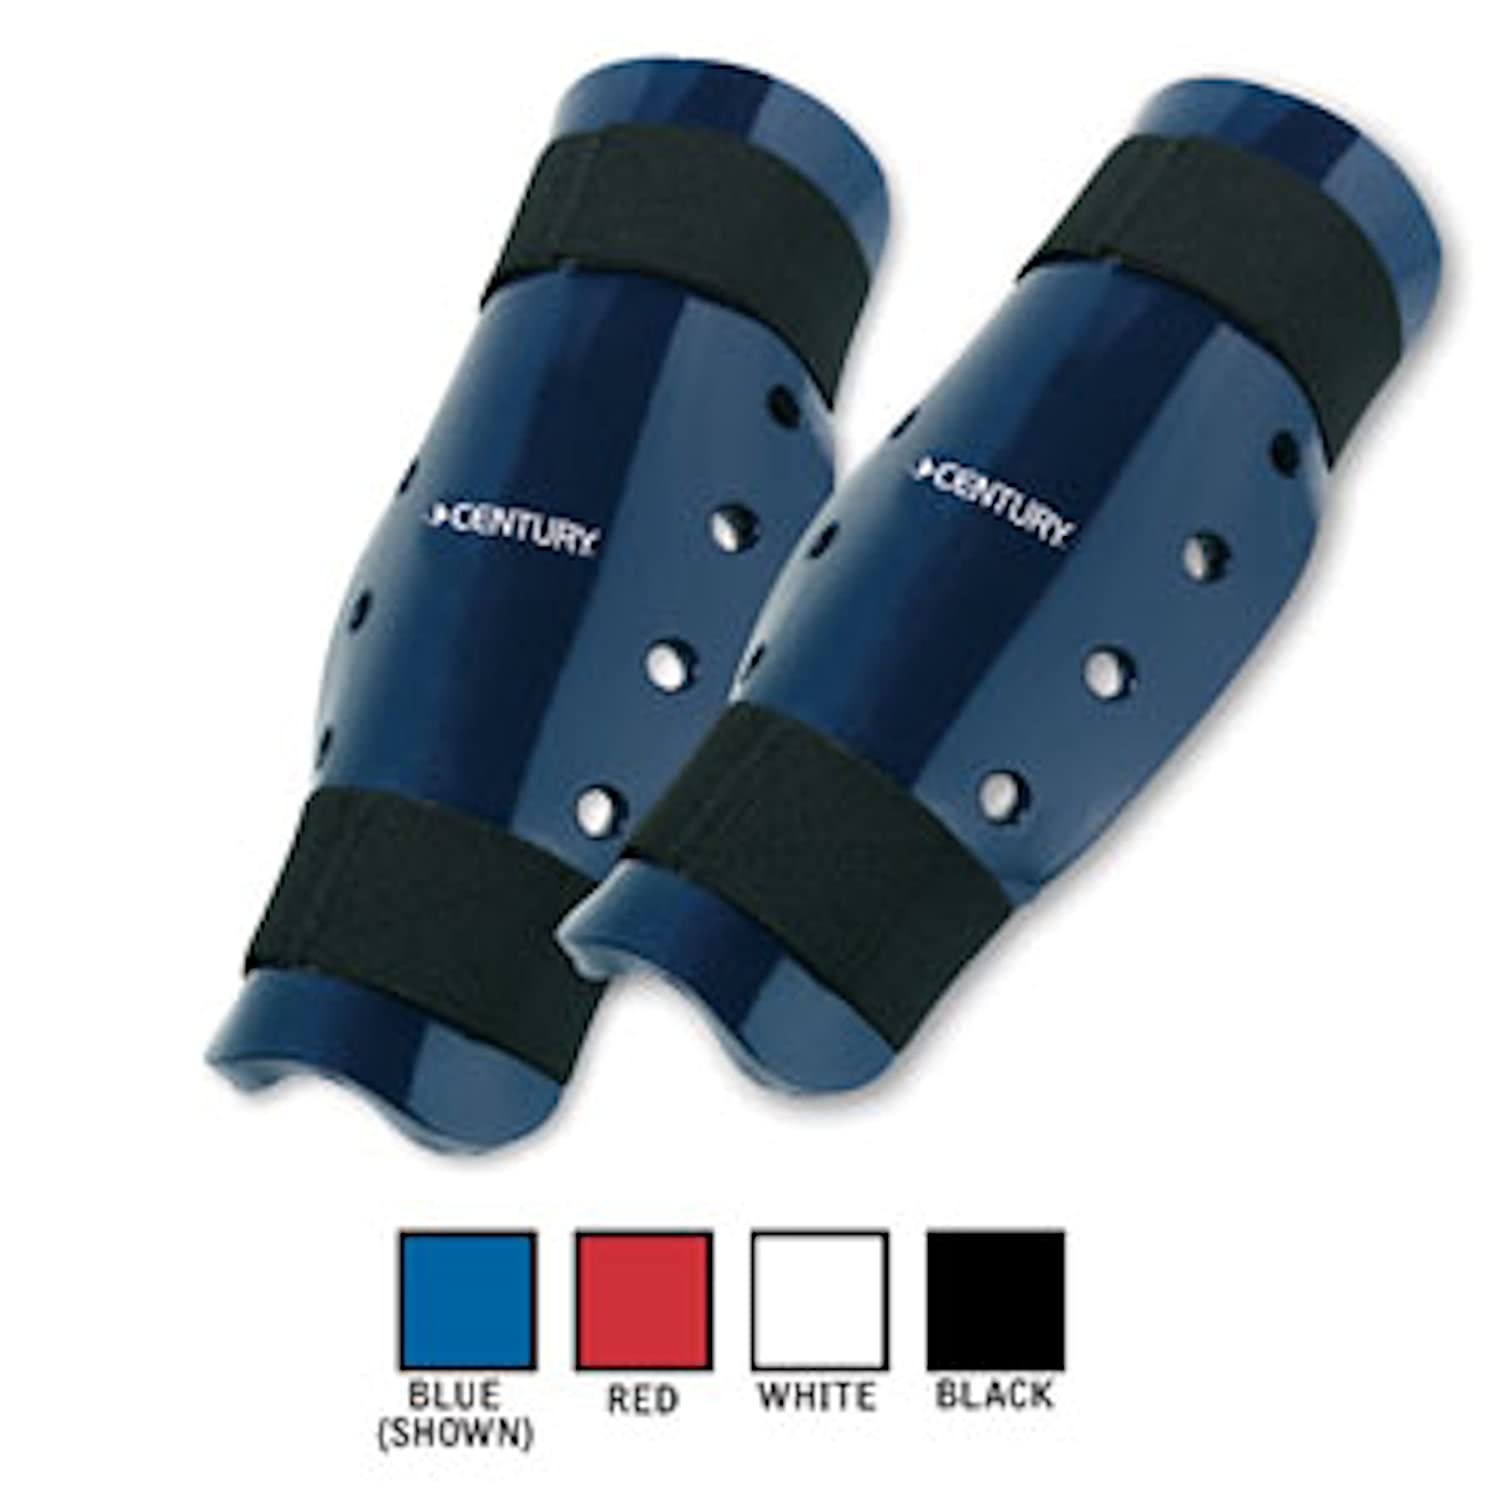 Century Student Shin Youth Guard Blue Youth Student Shin B0001TK7TY, 枕のペアレ:6f78300c --- capela.dominiotemporario.com